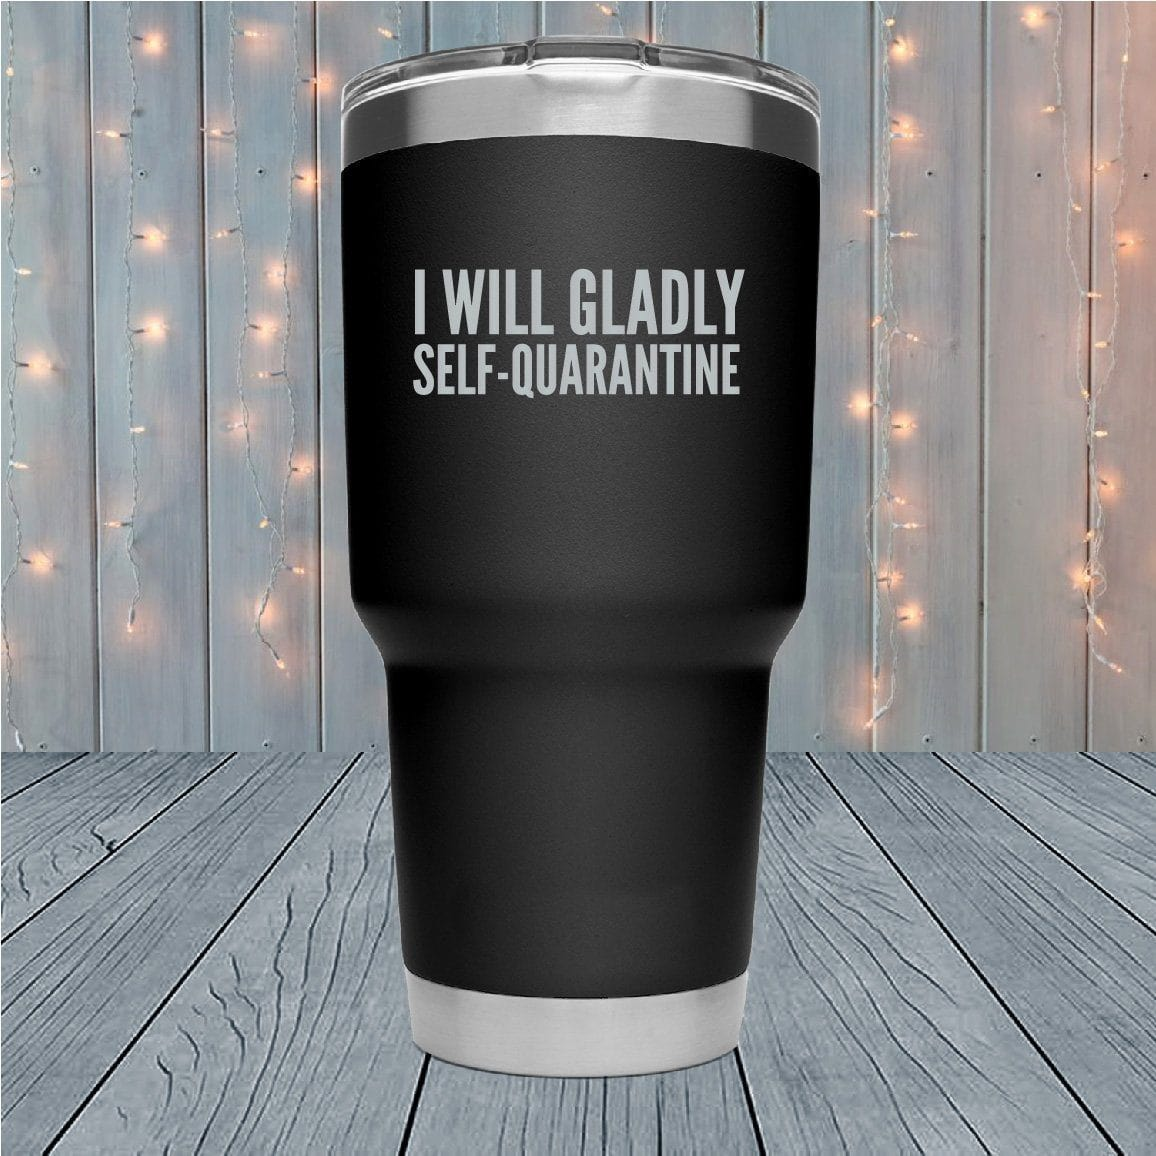 Gladly Self Quarantine Laser Engraved Tumblers